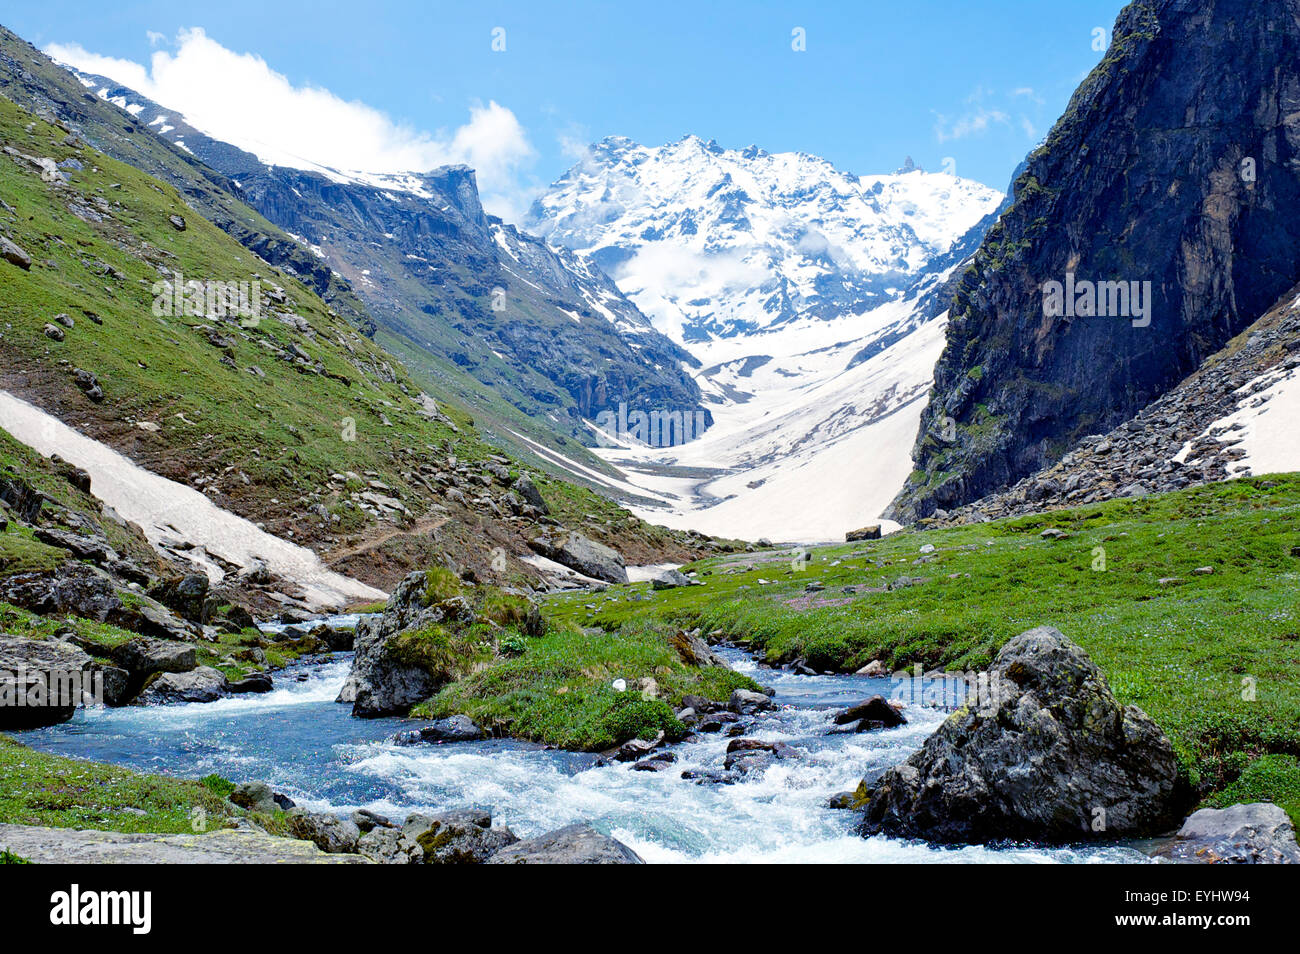 Looking towards Hampta Pass, Himachal Pradesh, India - Stock Image